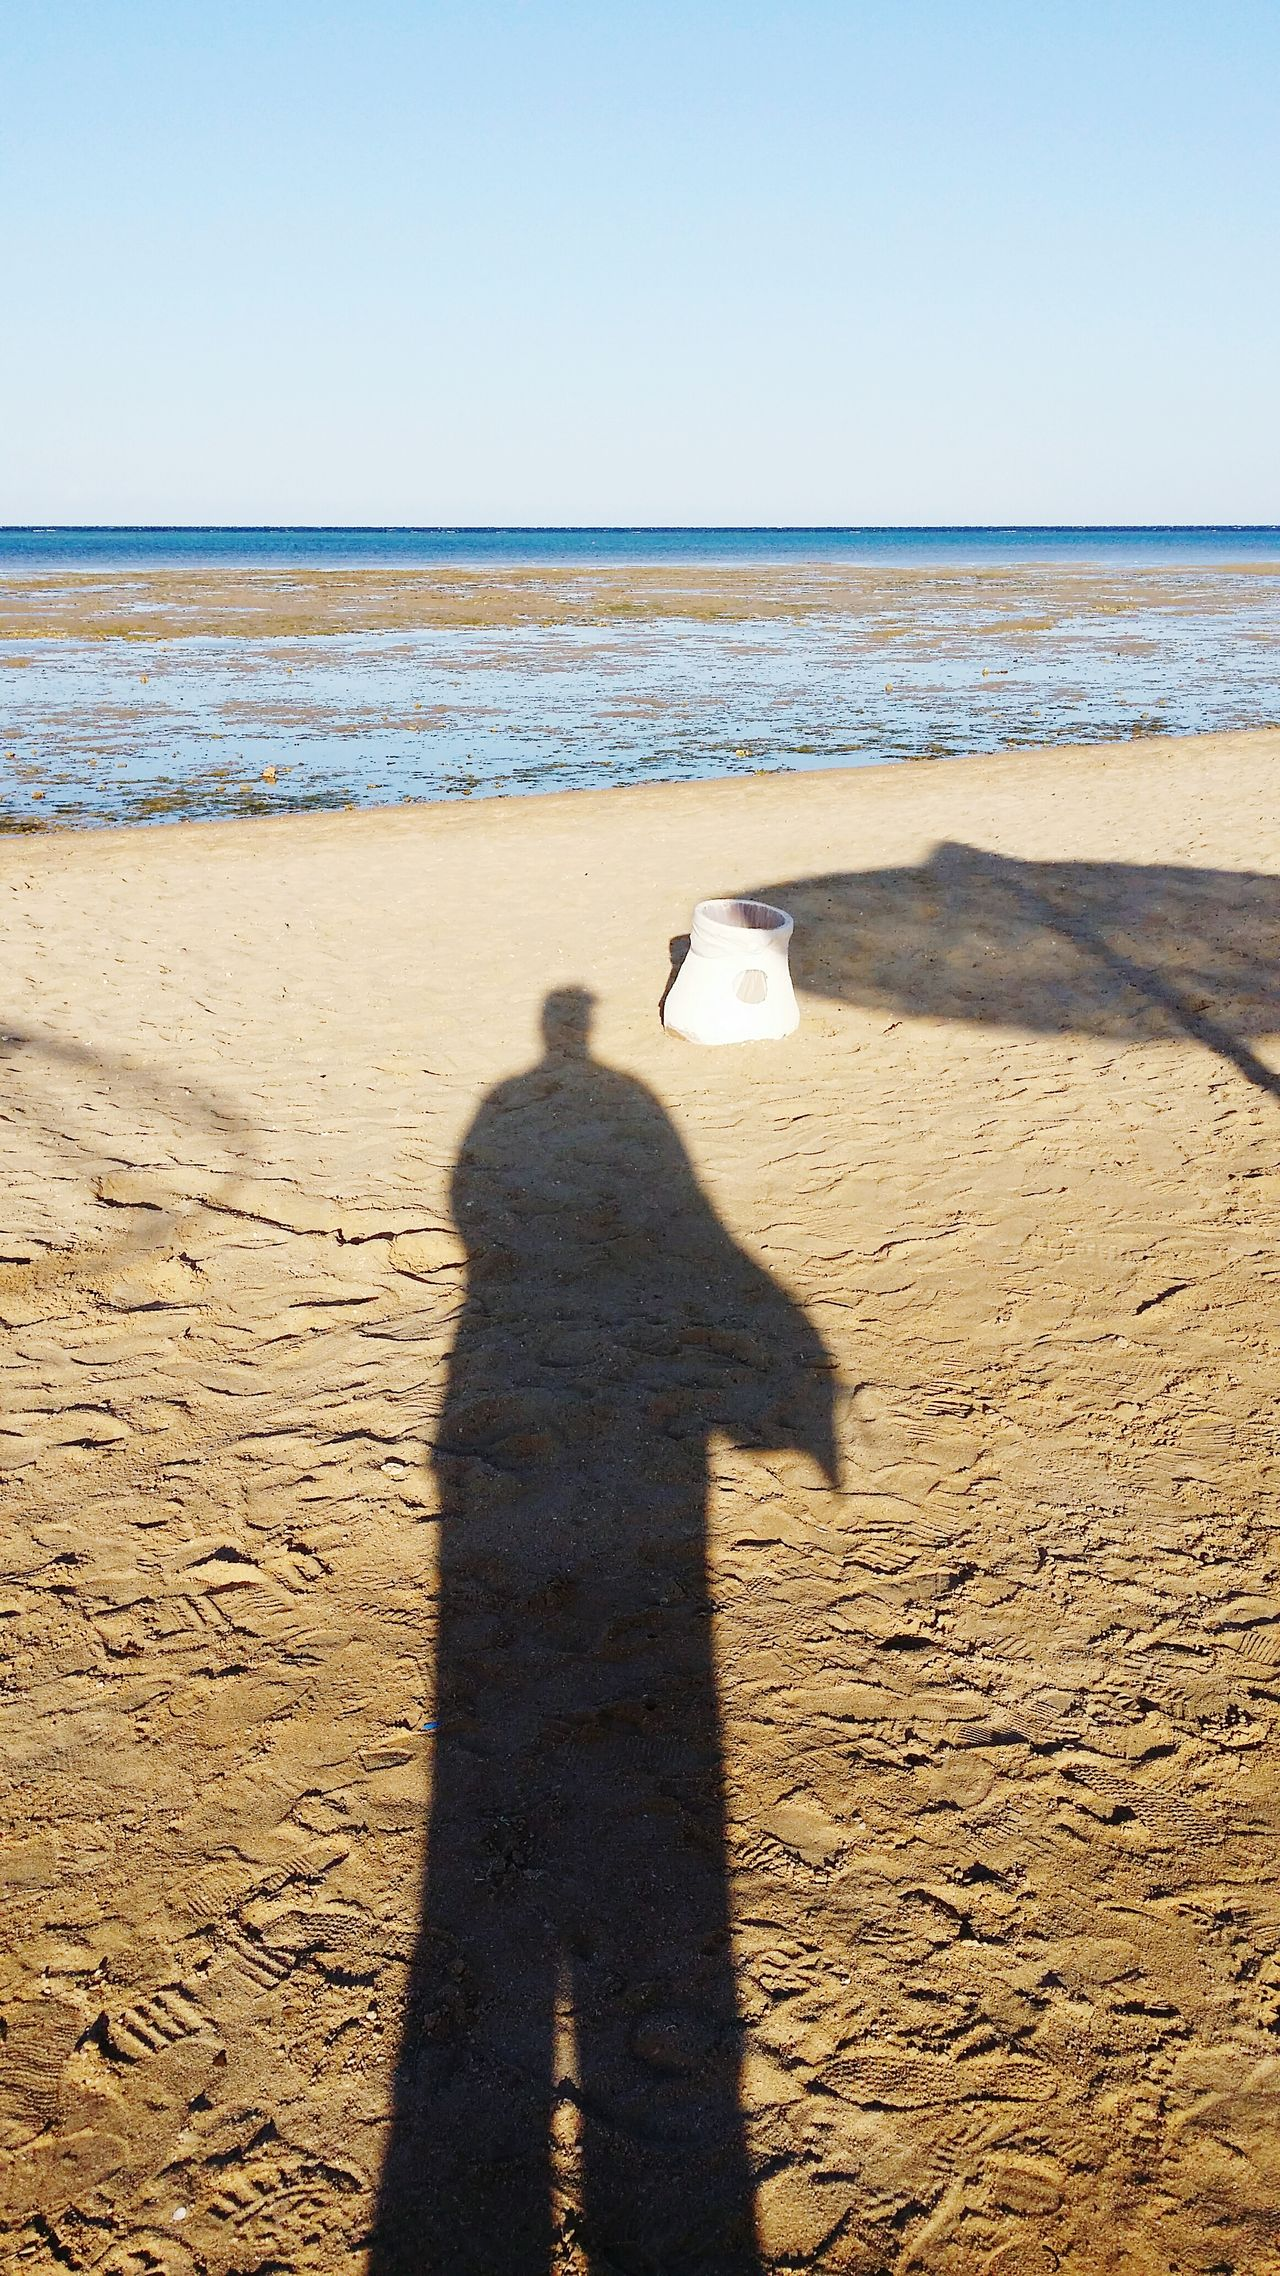 Shadow...thats me 😉 Shadow Sunlight Focus On Shadow Real People Beach One Person Clear Sky Sea Outdoors Leisure Activity Day Adults Only Sand Horizon Over Water Adult People Sky Technology Only Men Human Hand Ladyphotographerofthemonth No Filter, No Edit, Just Photography Egypt Red Sea Makadi Bay Egypt